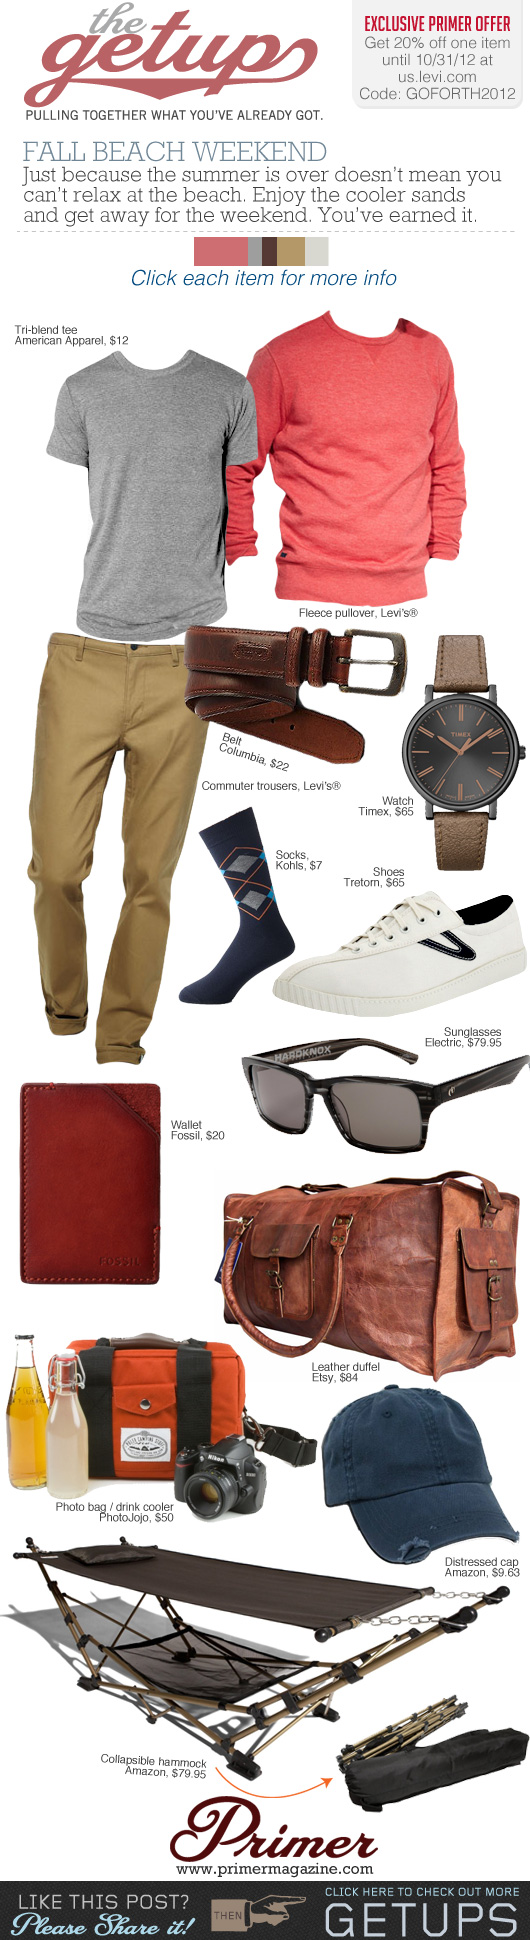 Fall Beach Weekend outfit inspiration with red sweatshirt, gray t-shirt, khaki pants, white sneakers